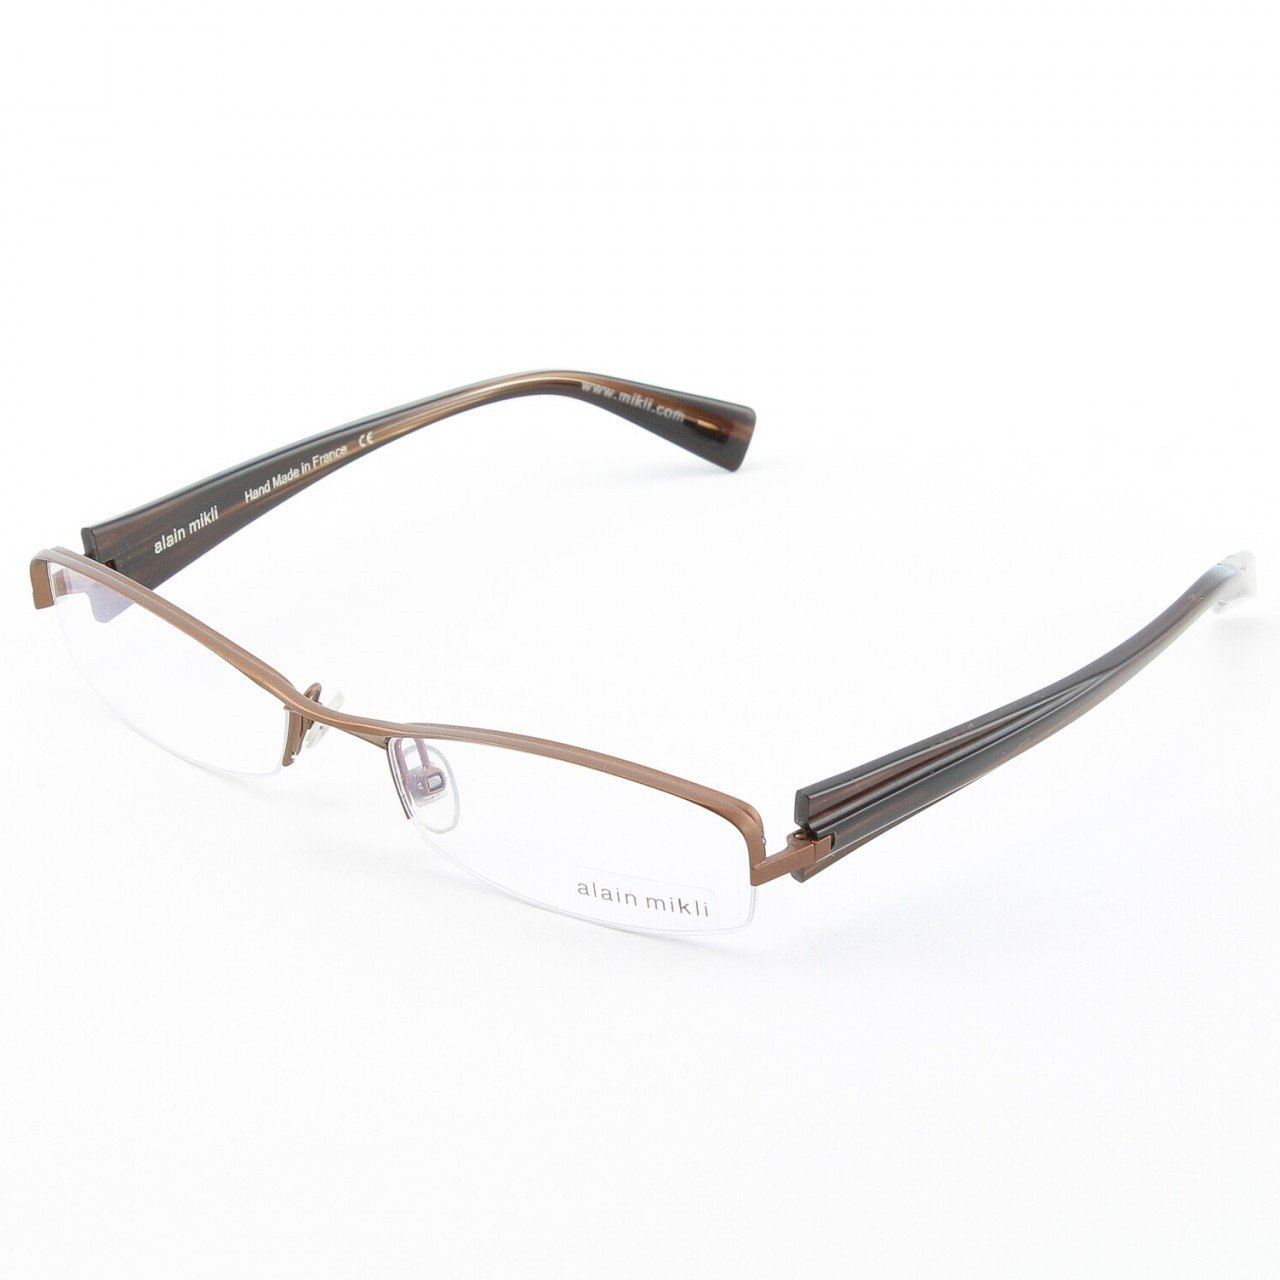 Alain Mikli Eyeglasses AL0656 Col. 16 Bronze Metallic Frame with Dark Brown Temples